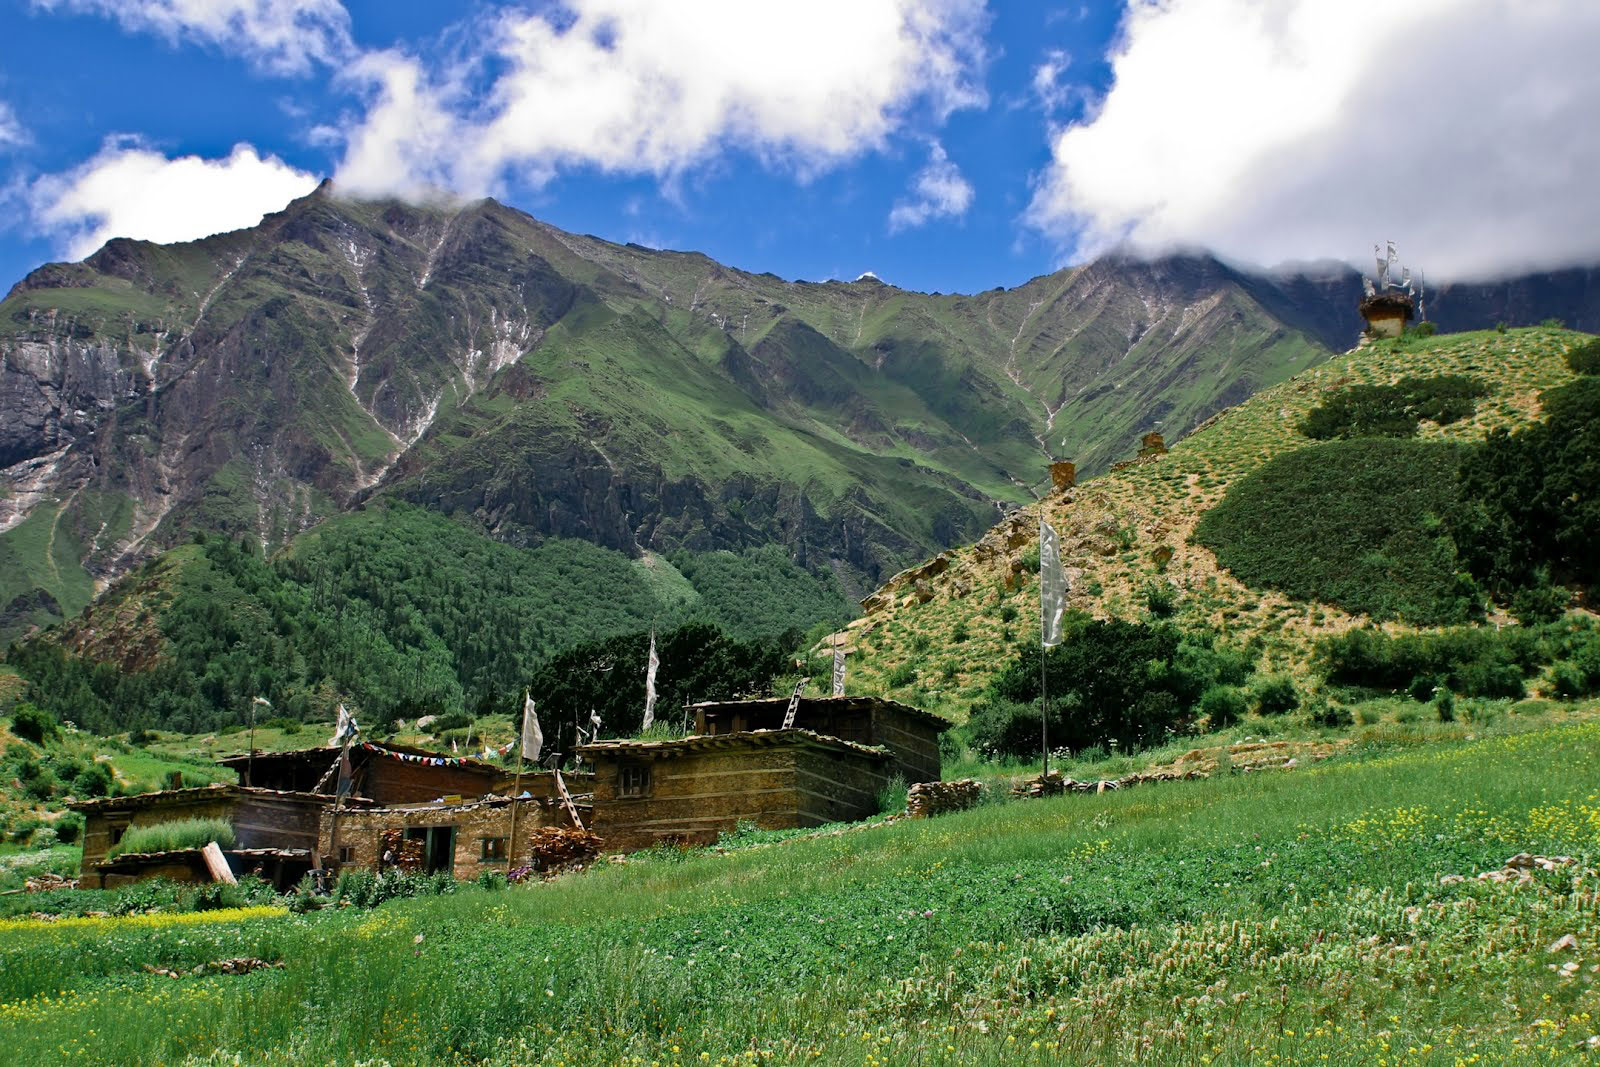 Himalayan Farmhouse Meadow Upper Dolpo Trek Nepal Trekking Hike Hiking Himalayas